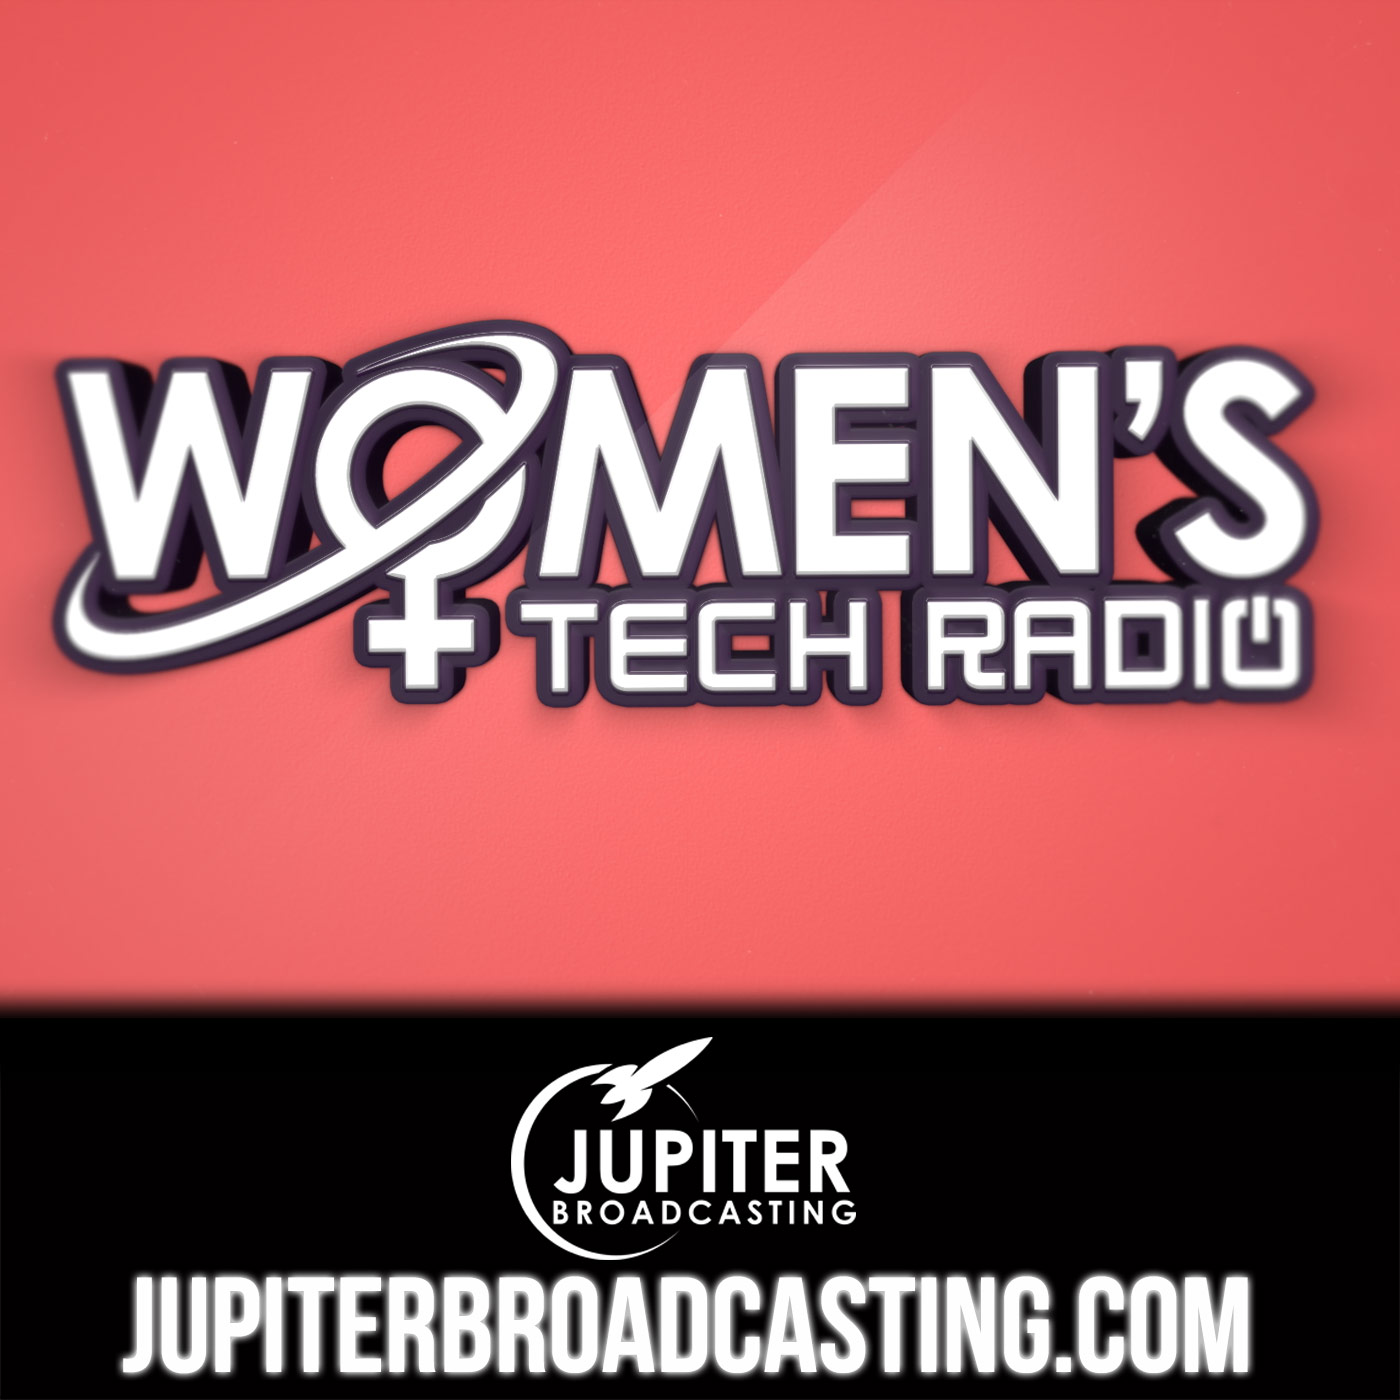 Women's Tech Radio MP3